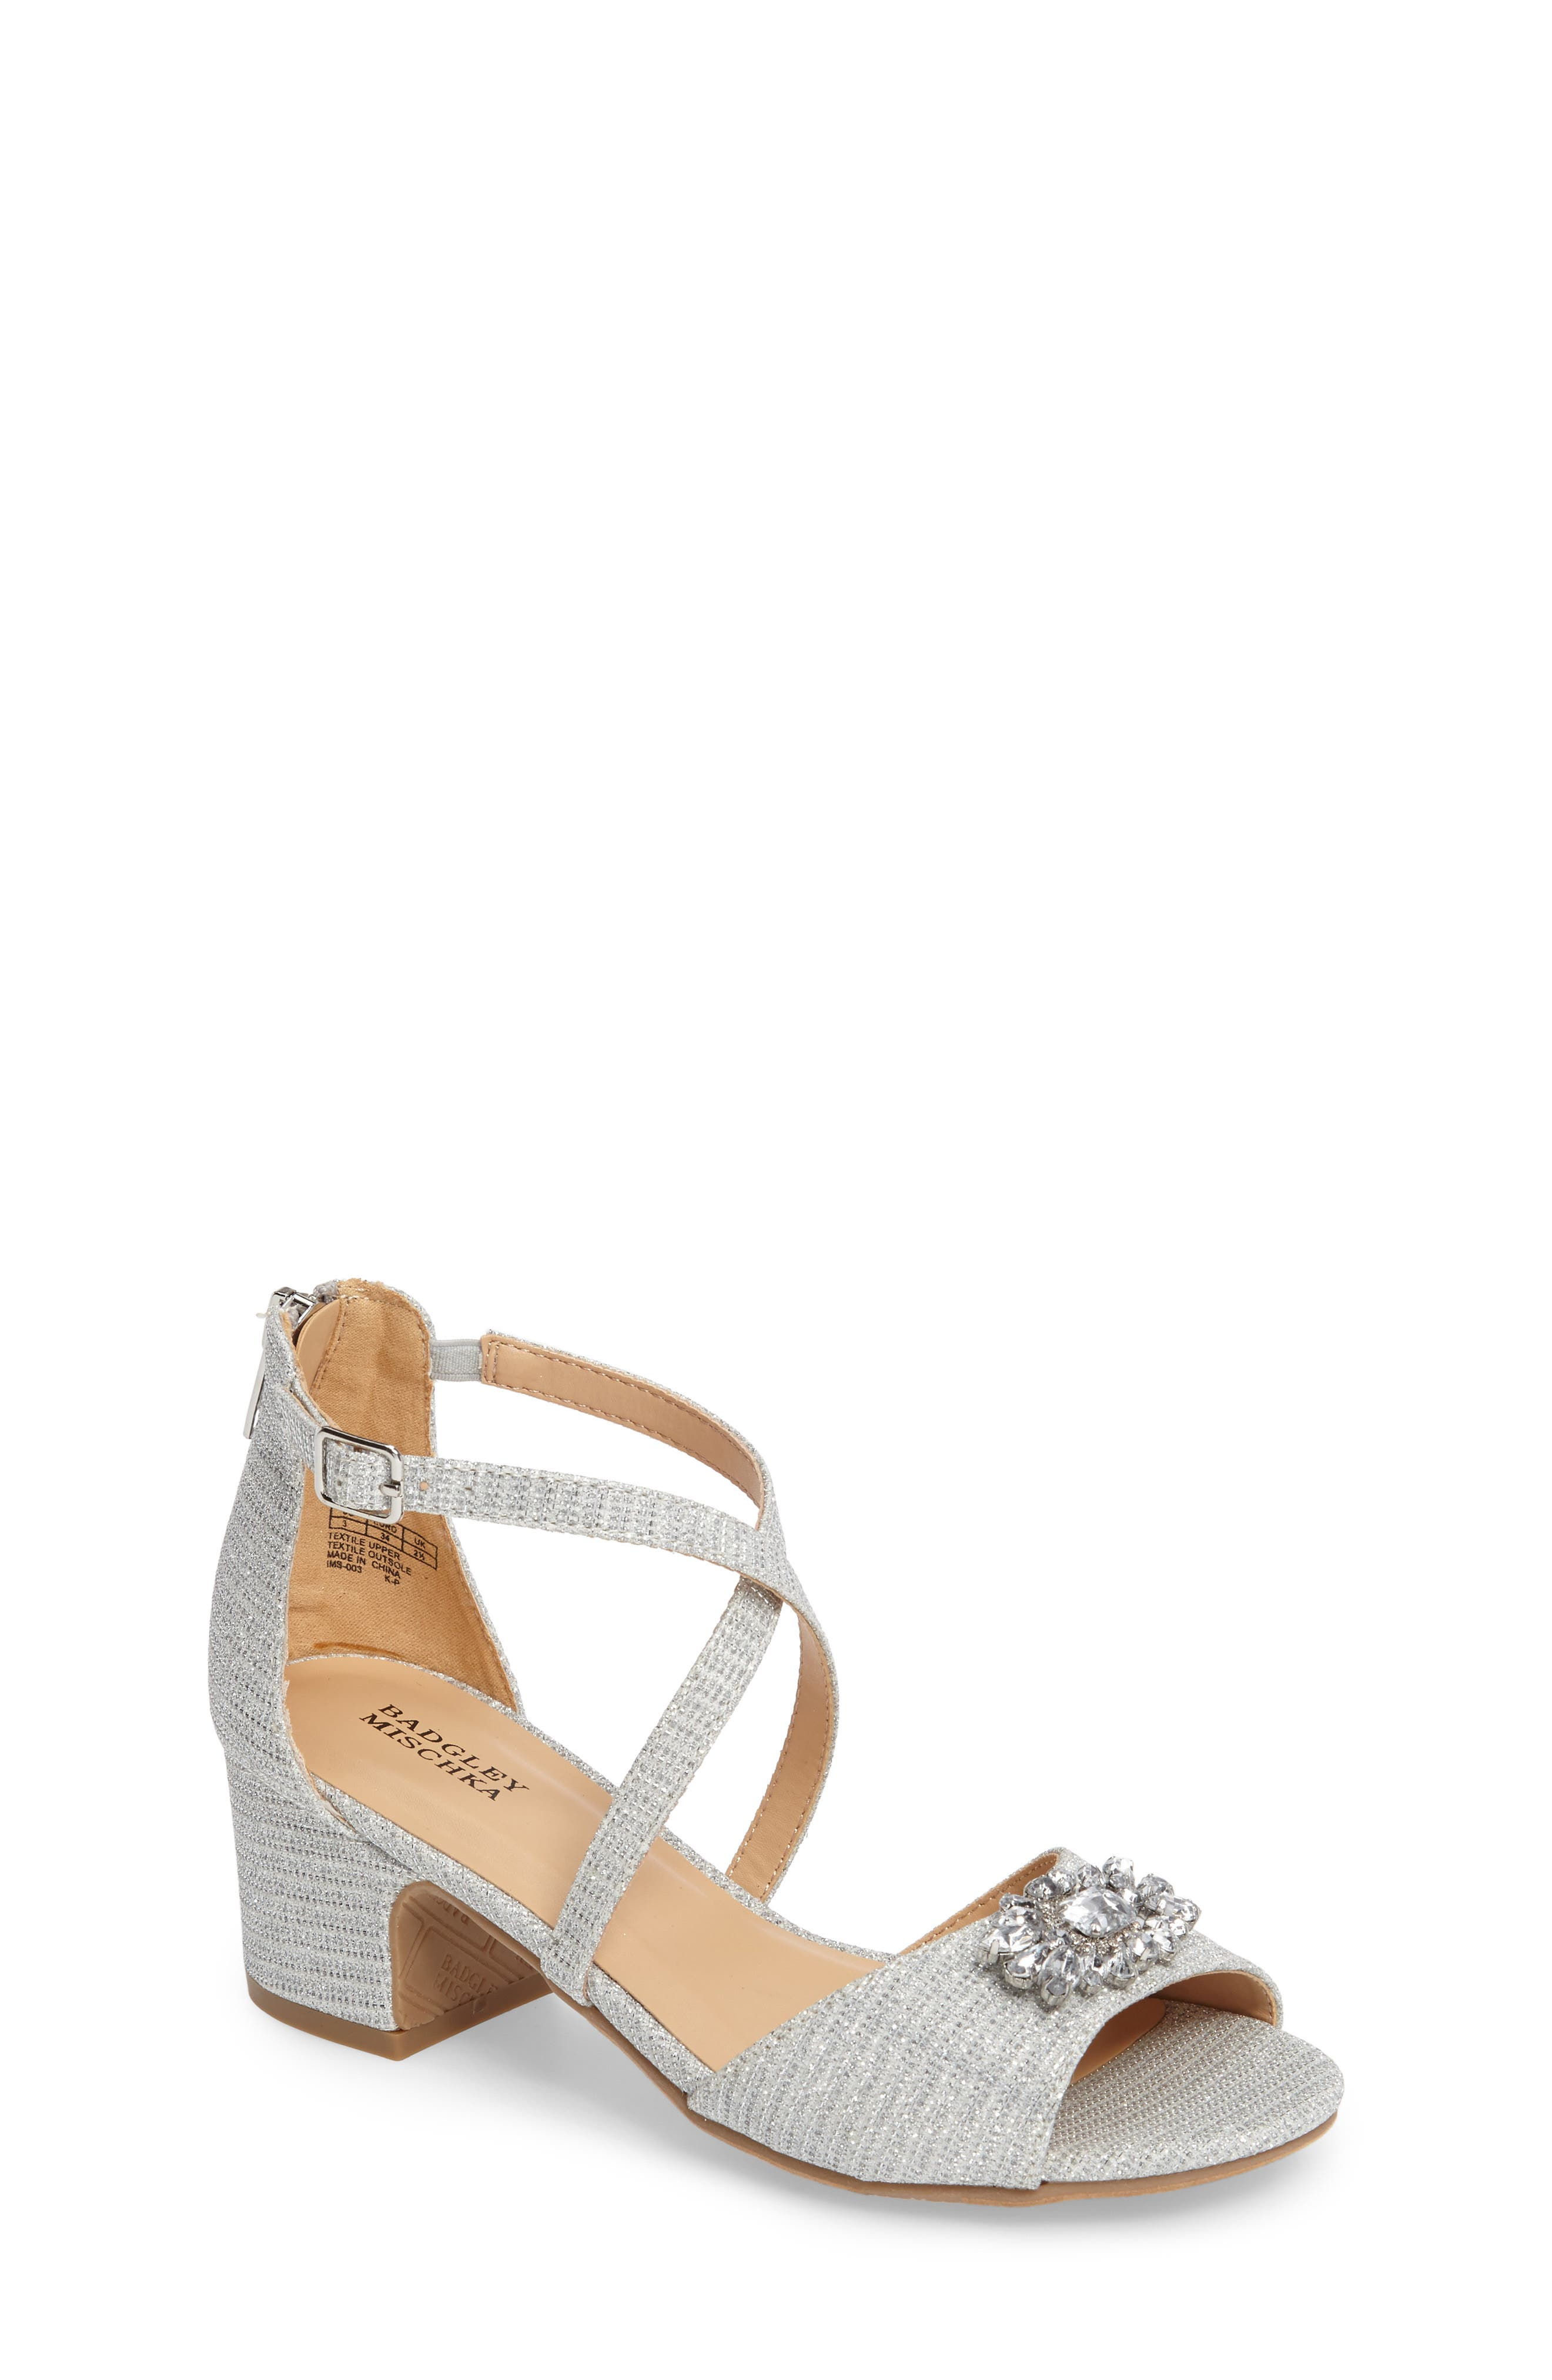 Badgley Mischka Pernia Gems Sandal, Main, color, WHITE